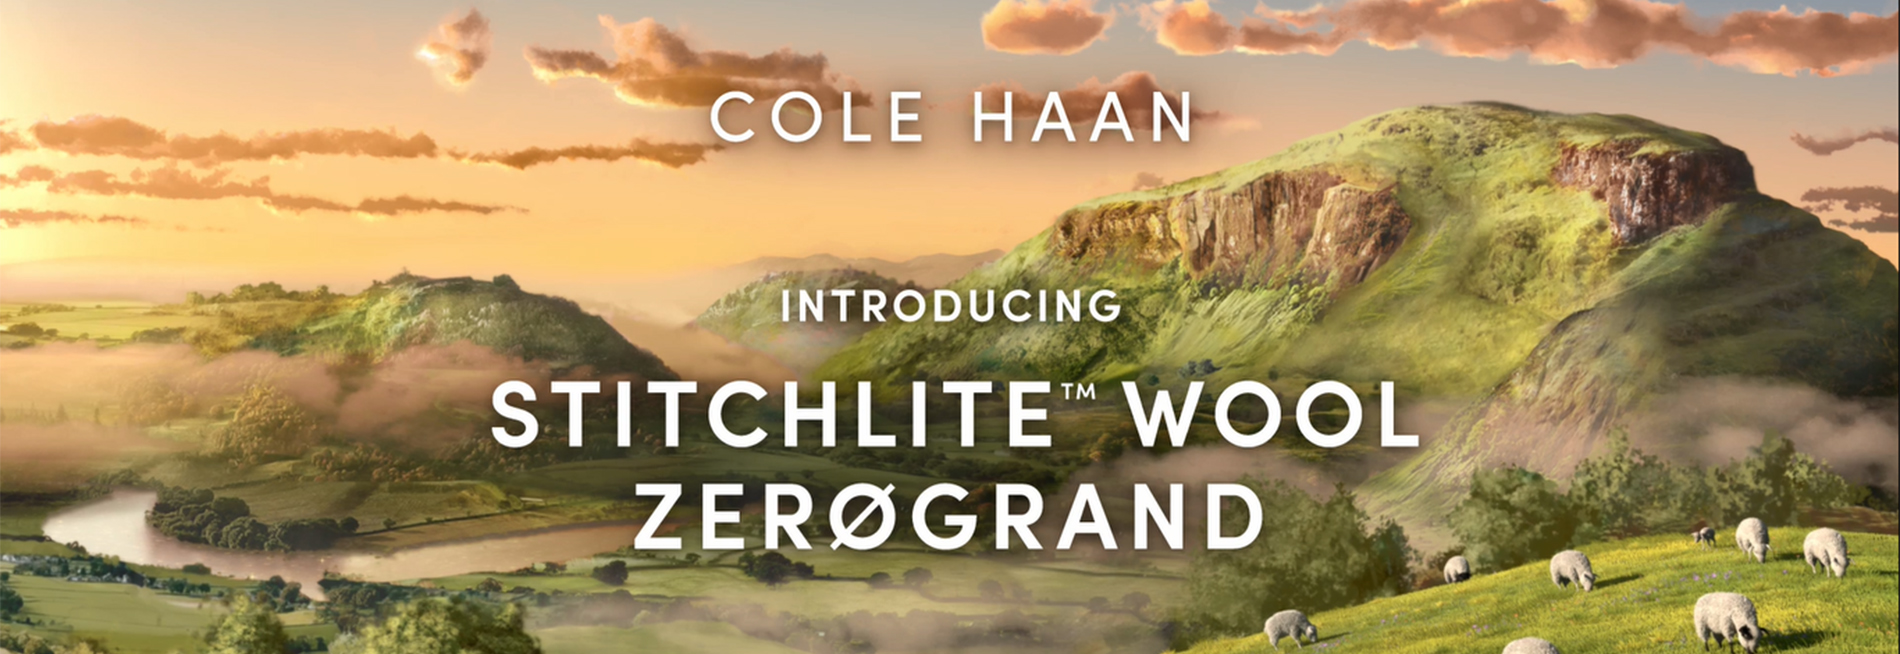 Cole Haan Introduces ZERØGRAND with Stitchlite™ Wool and Partners with HouseSpecial To Bring the Idea To Life